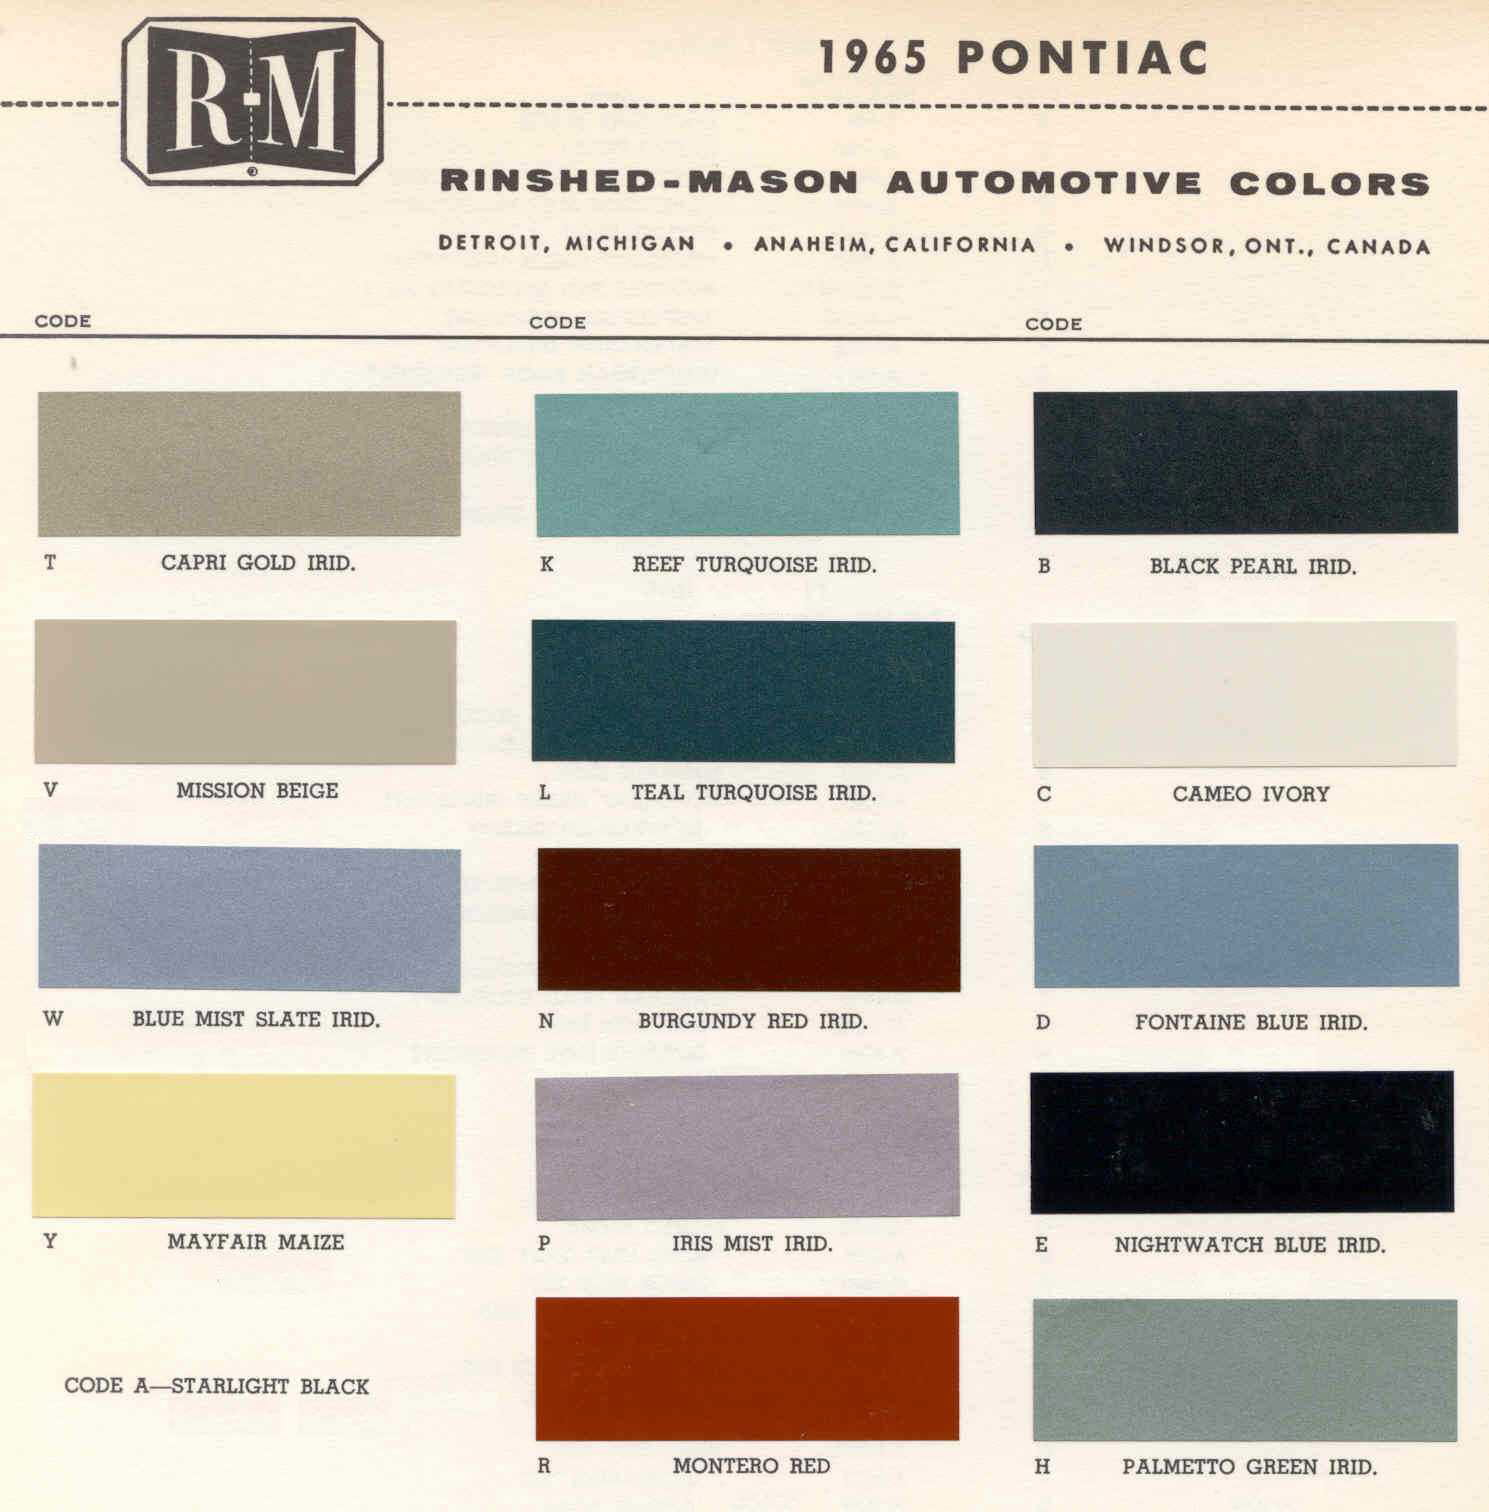 Color Code and Paint Color Chart for Pontiac in 1965